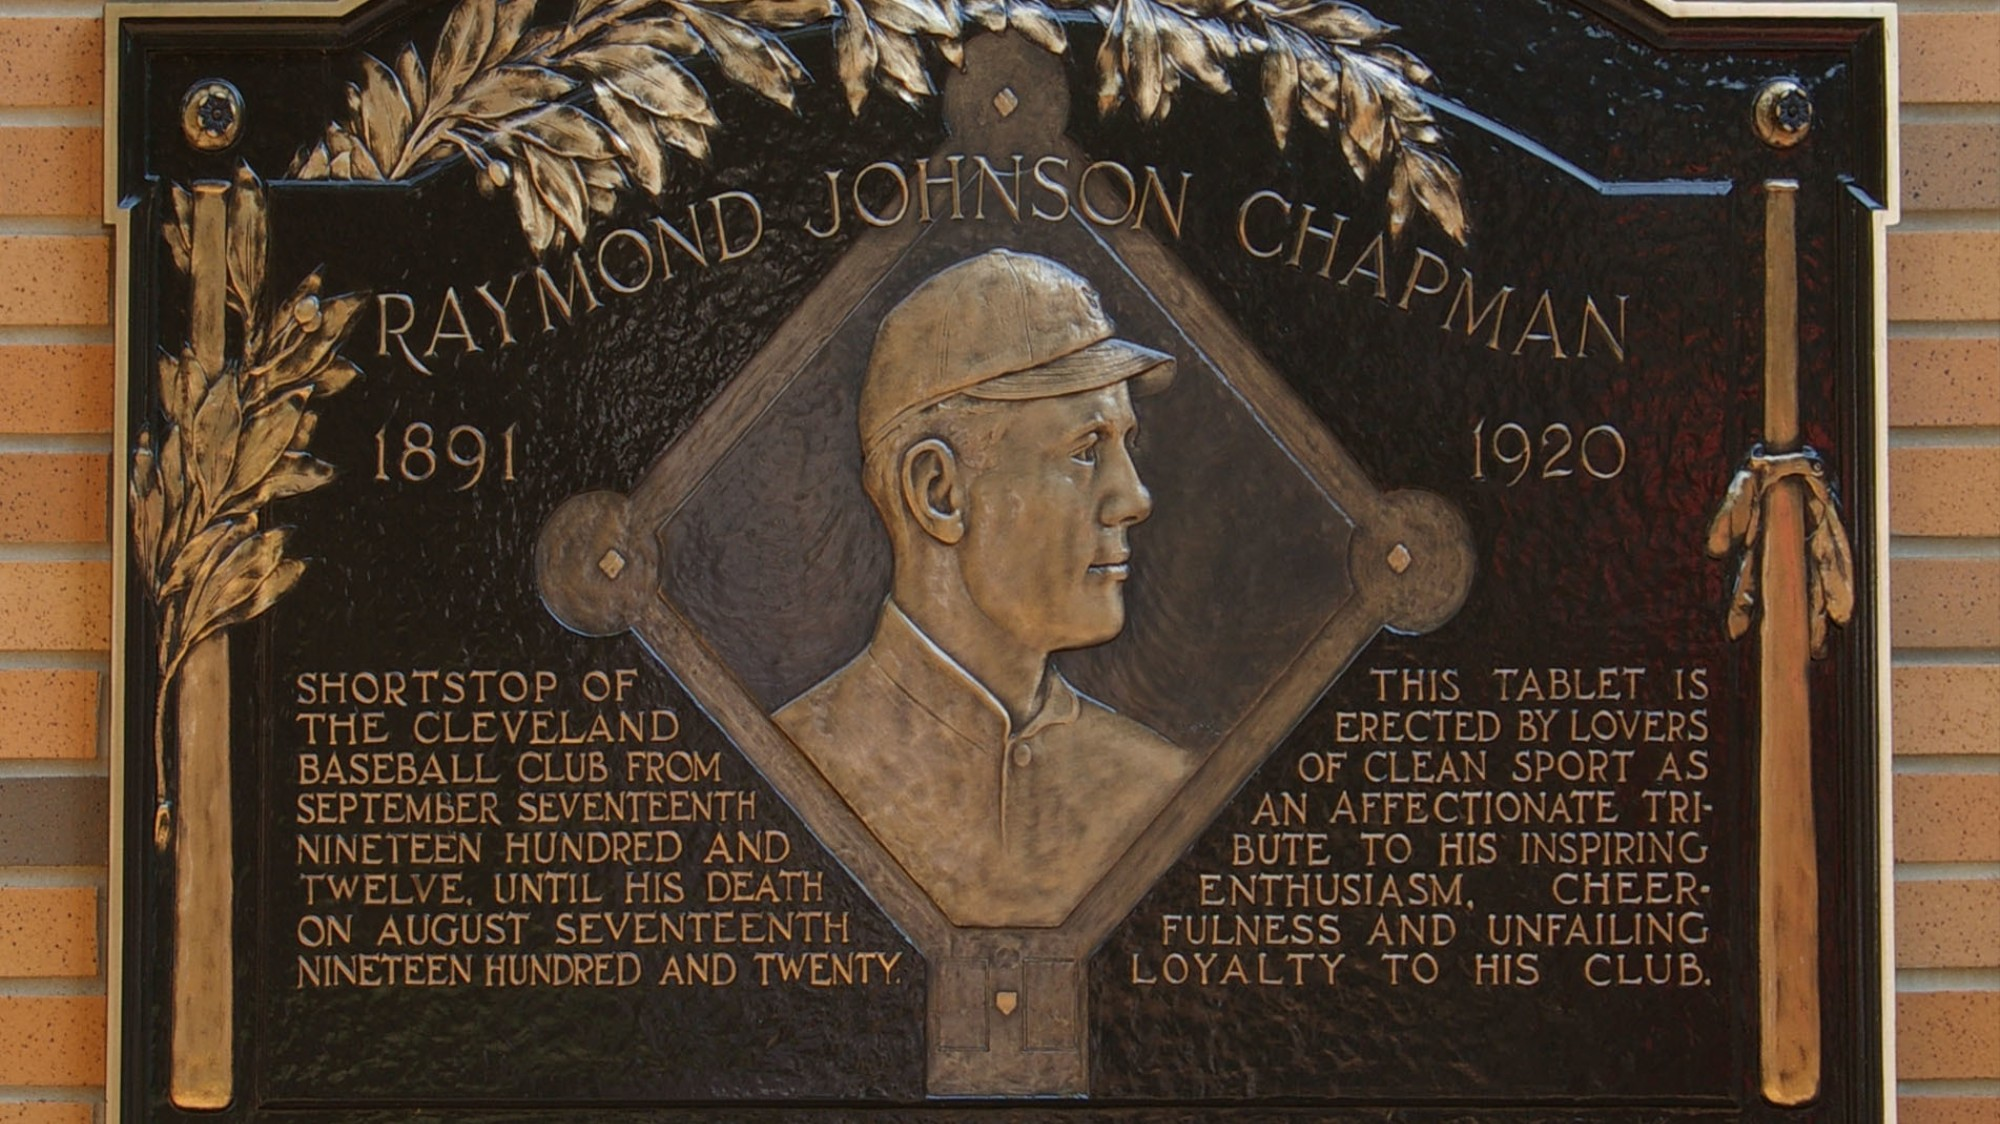 Throwback Thursday: Ray Chapman, the Only Major League